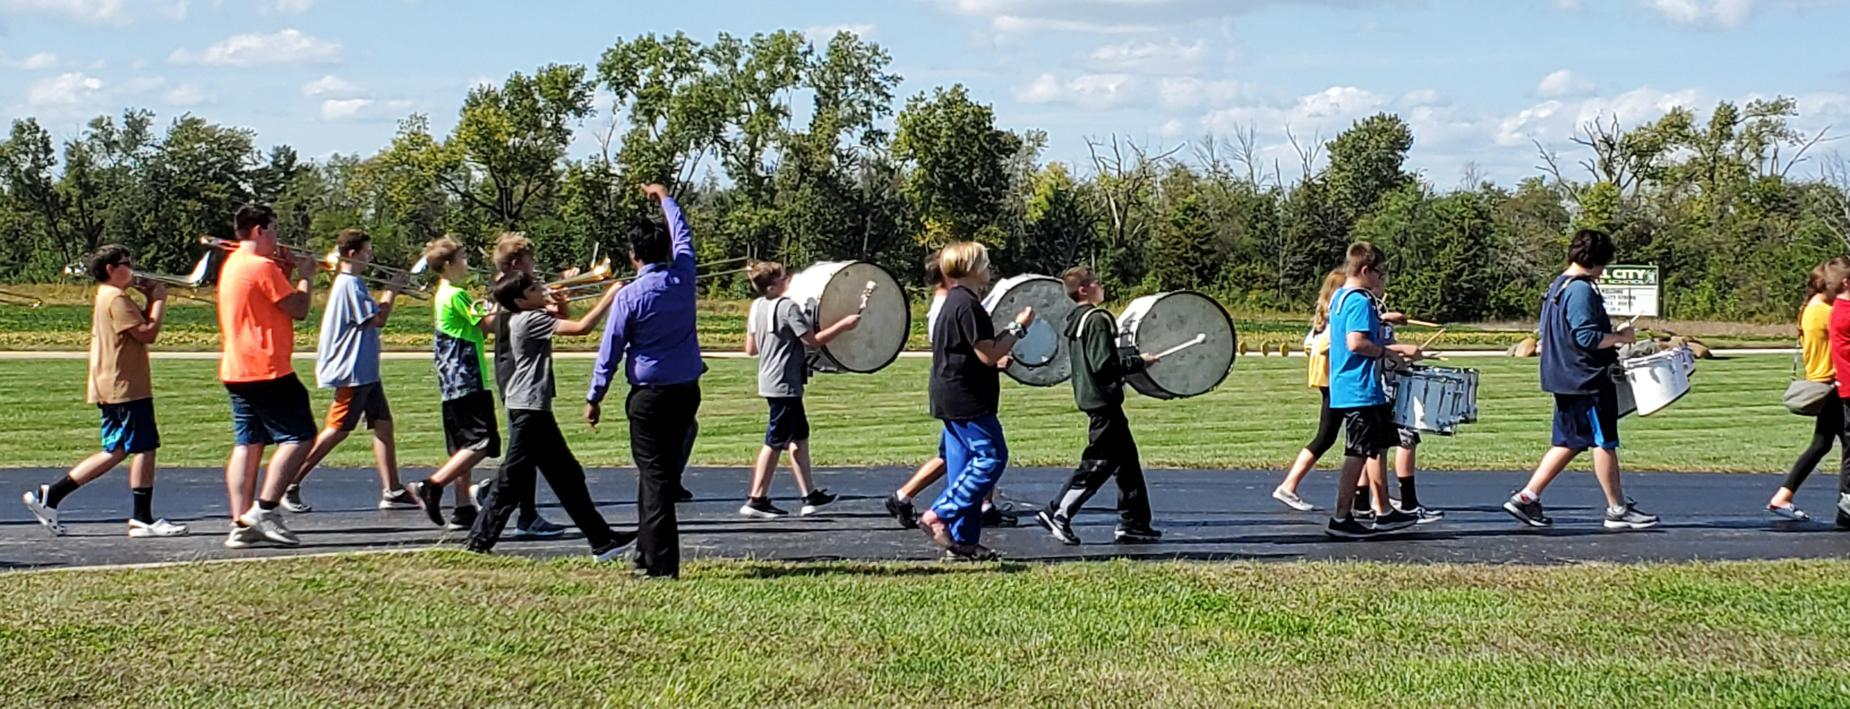 CCMS Band Practice